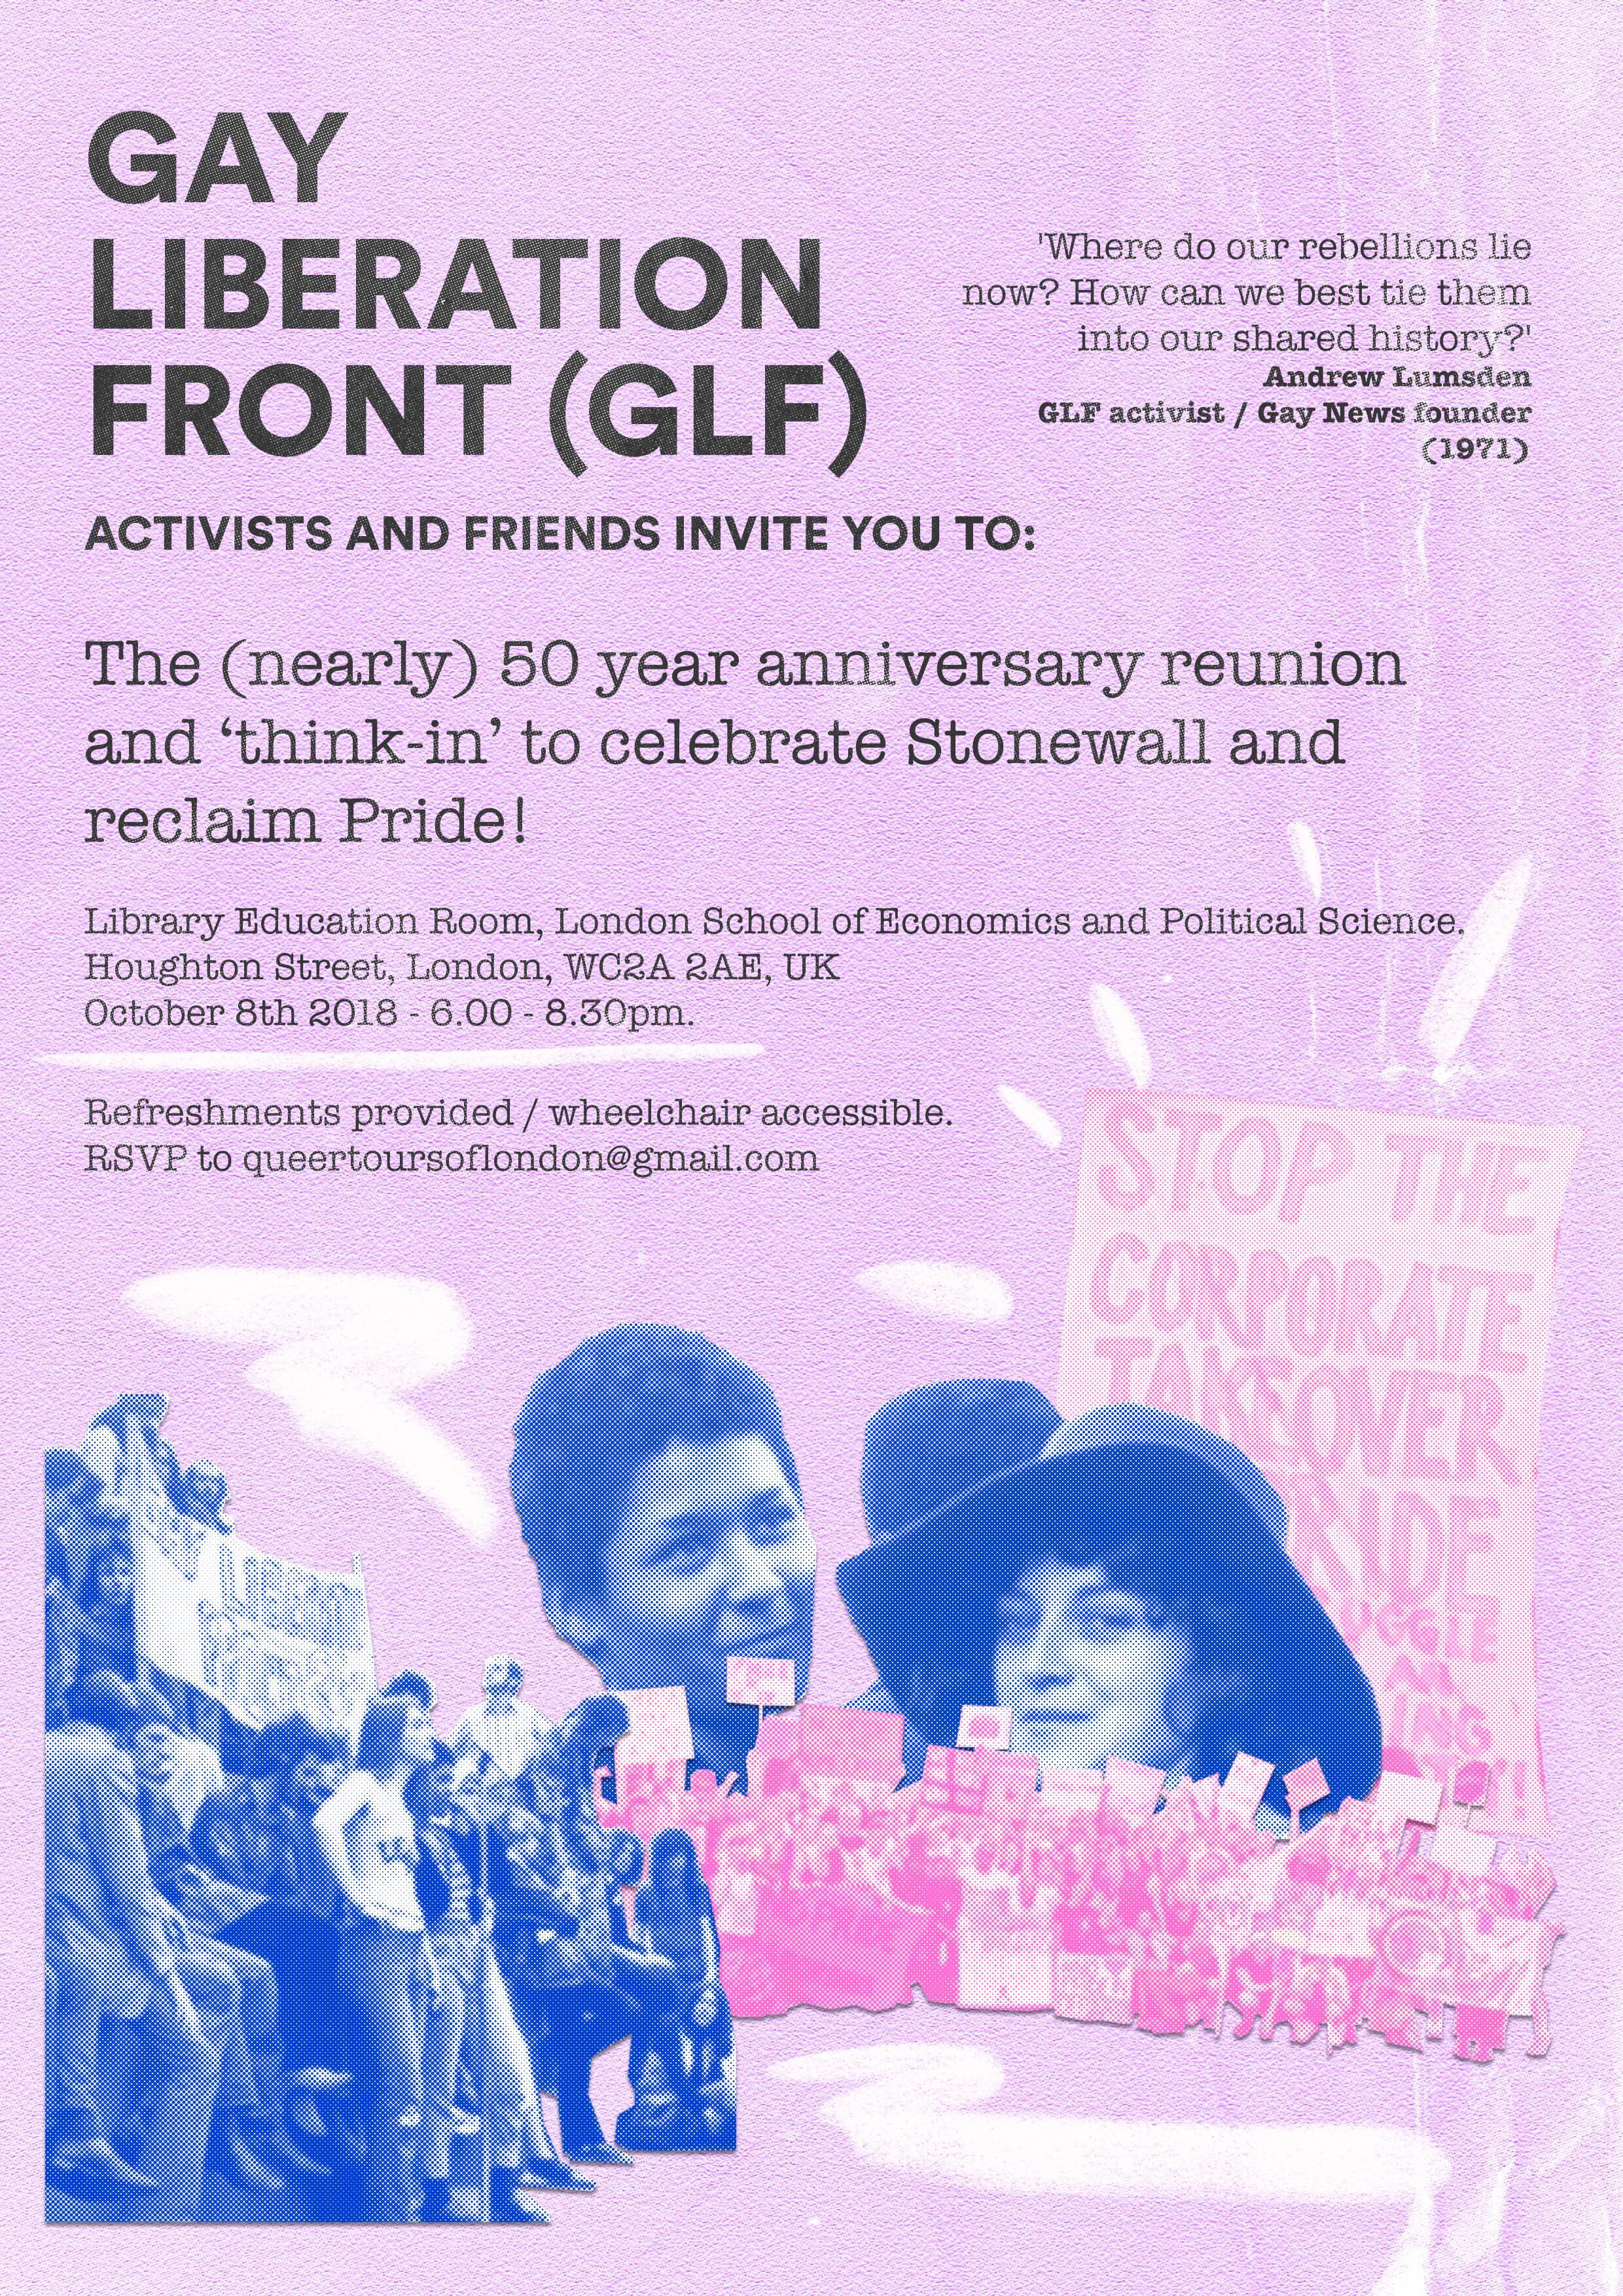 Special Invite to 'Gay Liberation Front' think-in and reunion – 08.10.18 – please RSVP :)